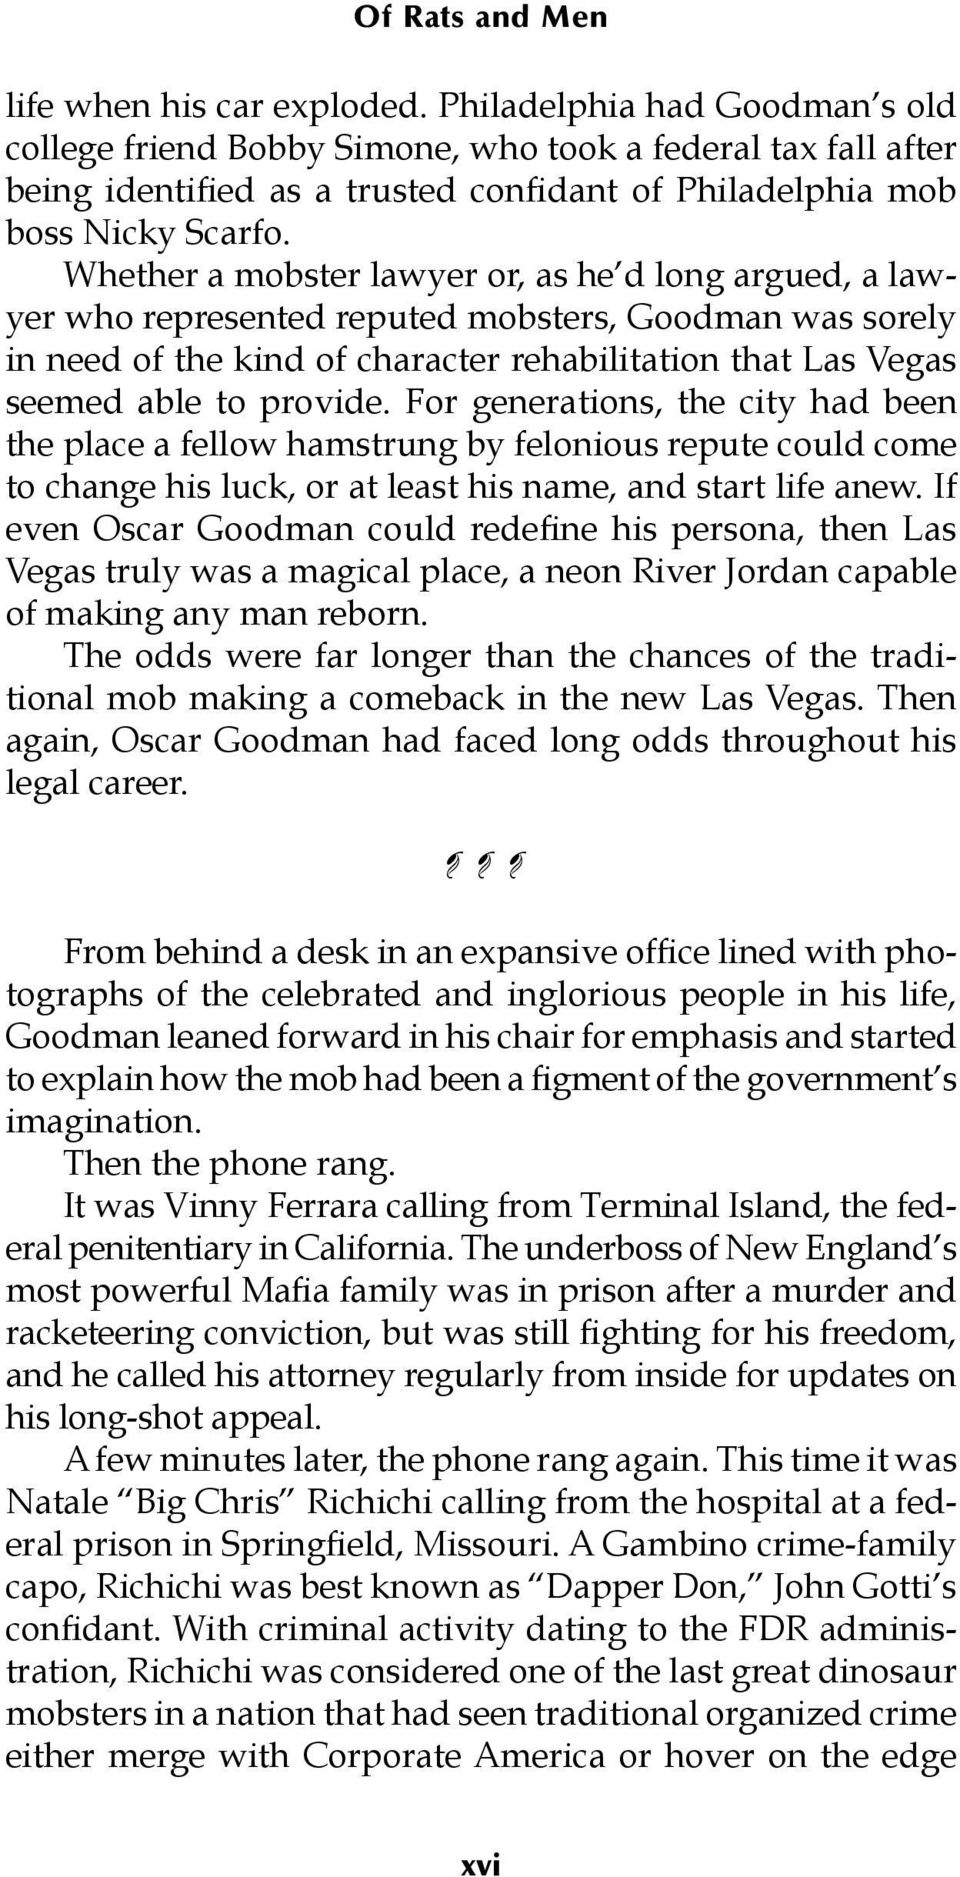 Whether a mobster lawyer or, as he d long argued, a lawyer who represented reputed mobsters, Goodman was sorely in need of the kind of character rehabilitation that Las Vegas seemed able to provide.